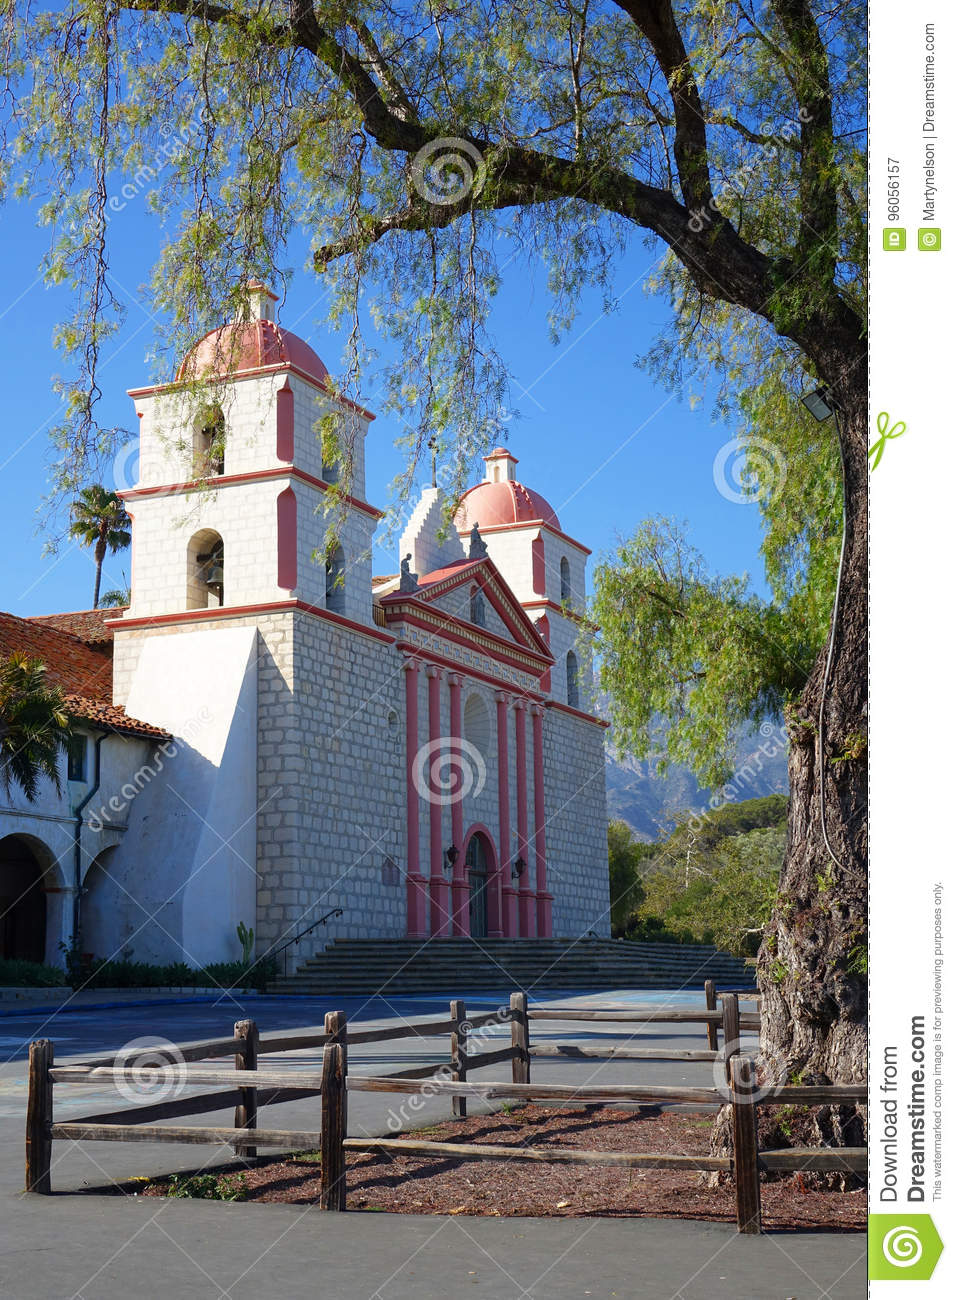 Mission Santa Barbara, la Californie